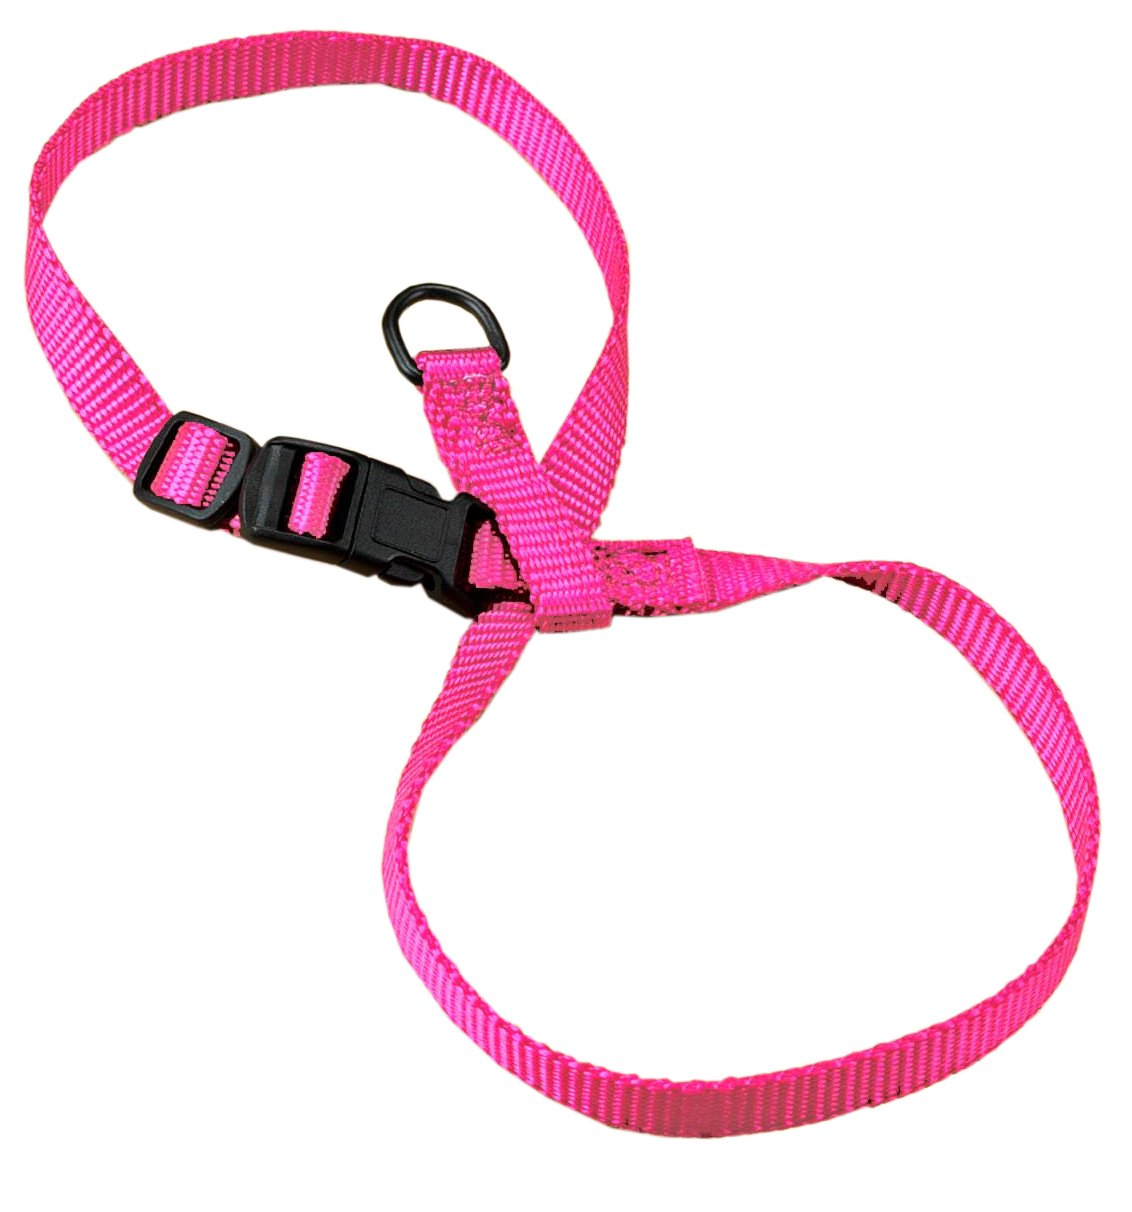 Hamilton 3/8-Inch Adjustable Figure 8 Pup-Cat Harness, Large, Hot Pink